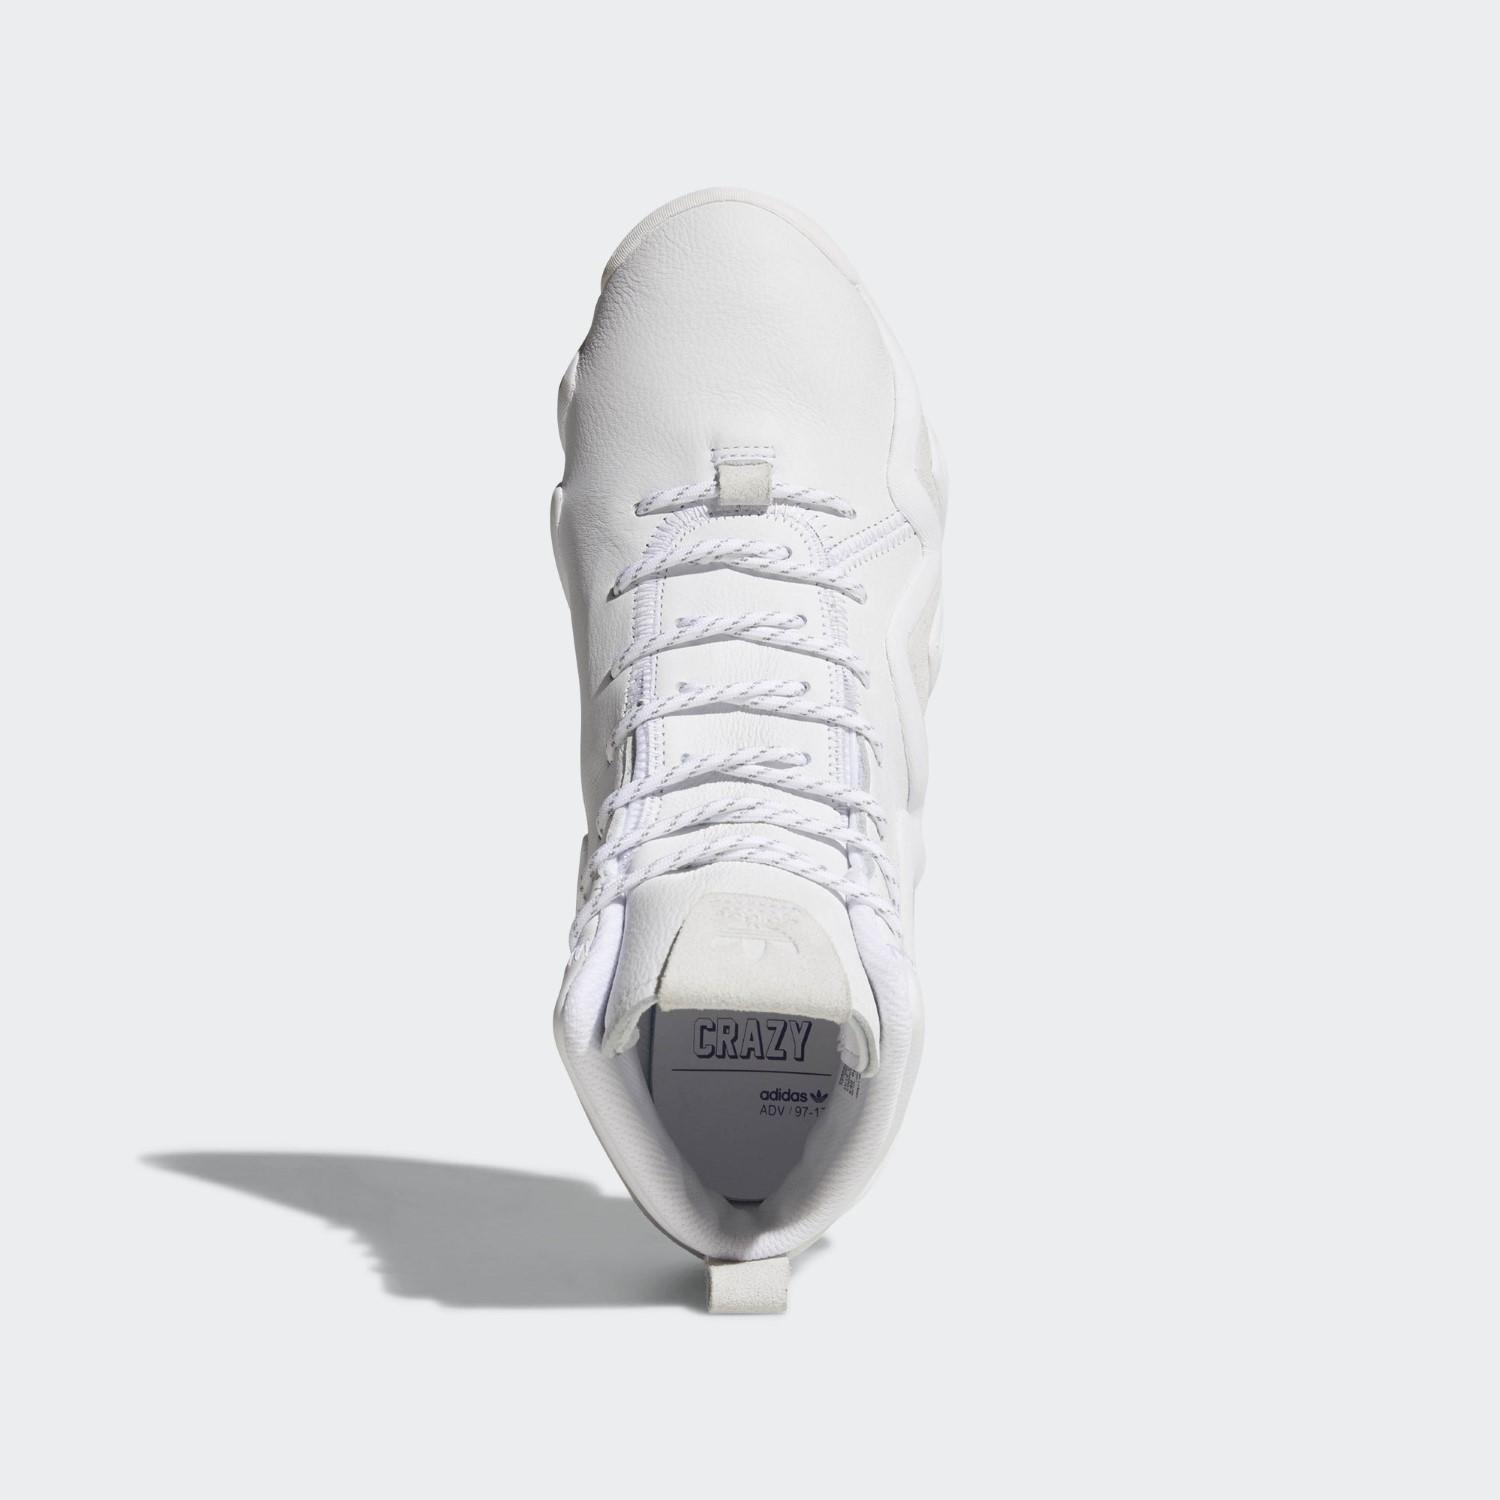 new style 5c486 2dbf4 Adidas - White Crazy 8 Adv Shoes for Men - Lyst. View fullscreen